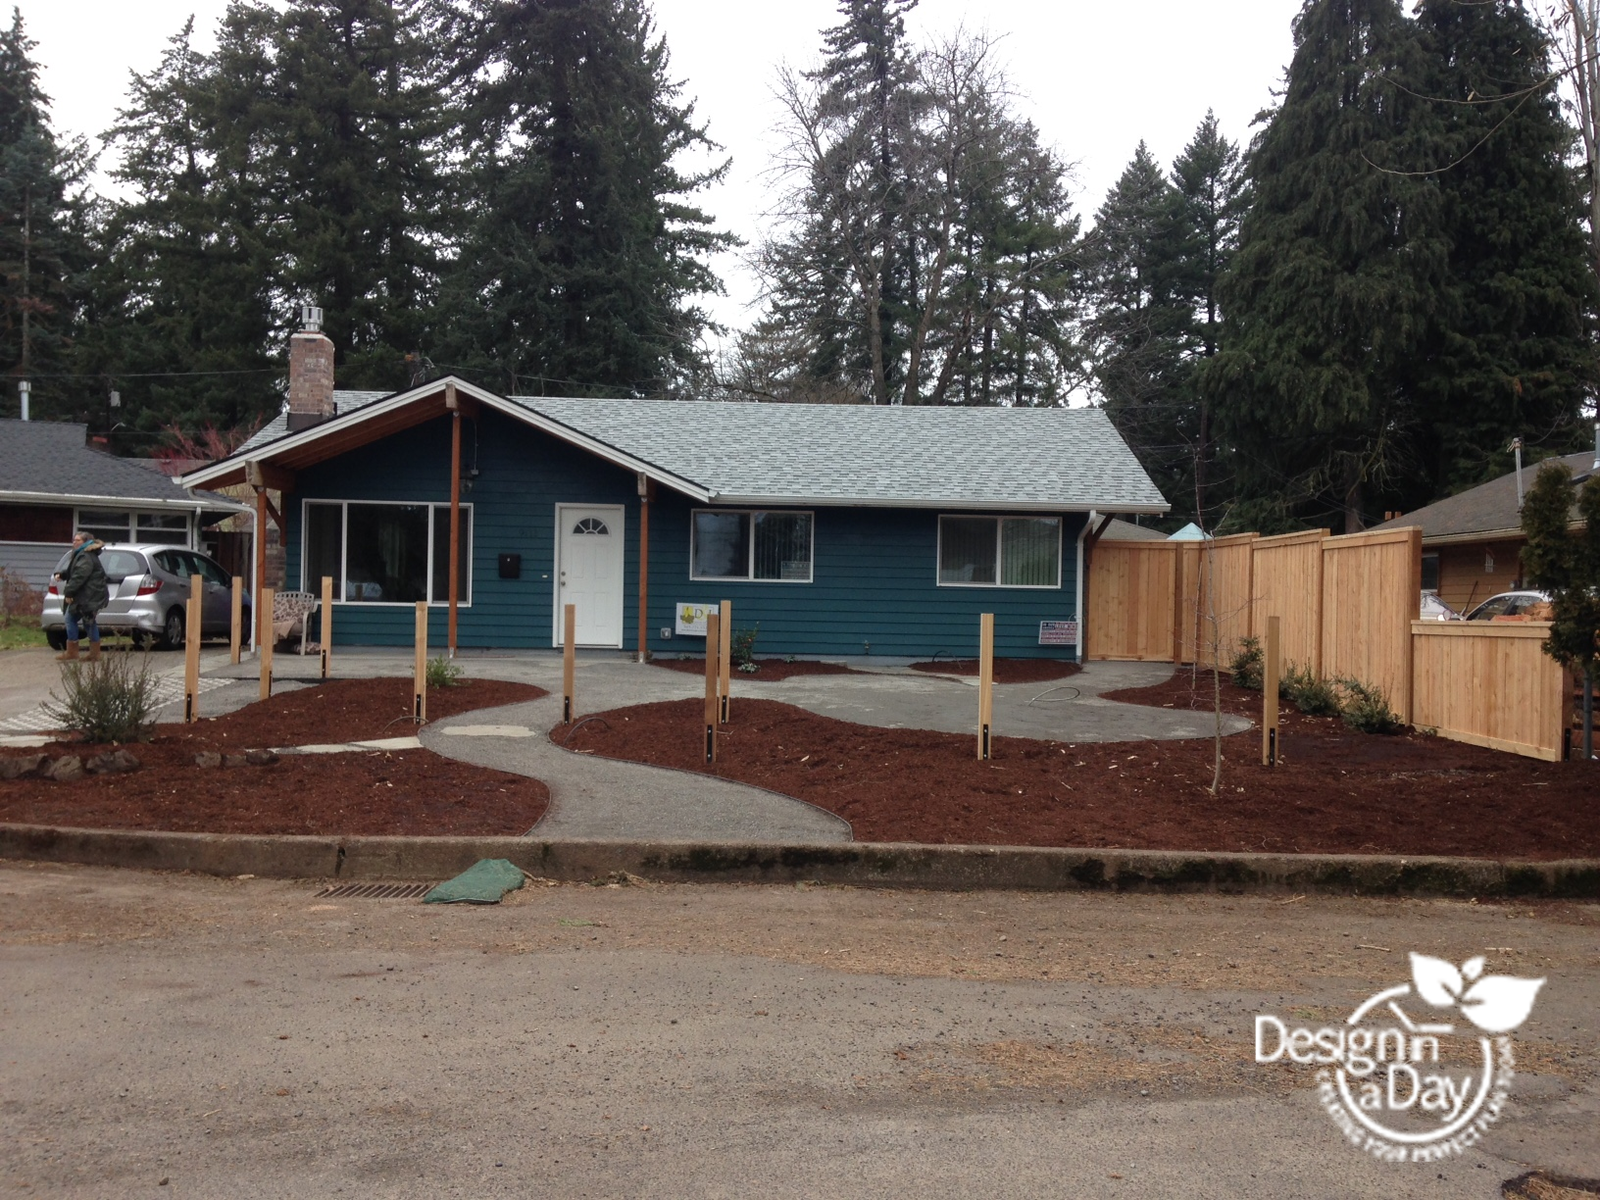 Portland front yard new hardscape paths for wild life friendly landscaping.